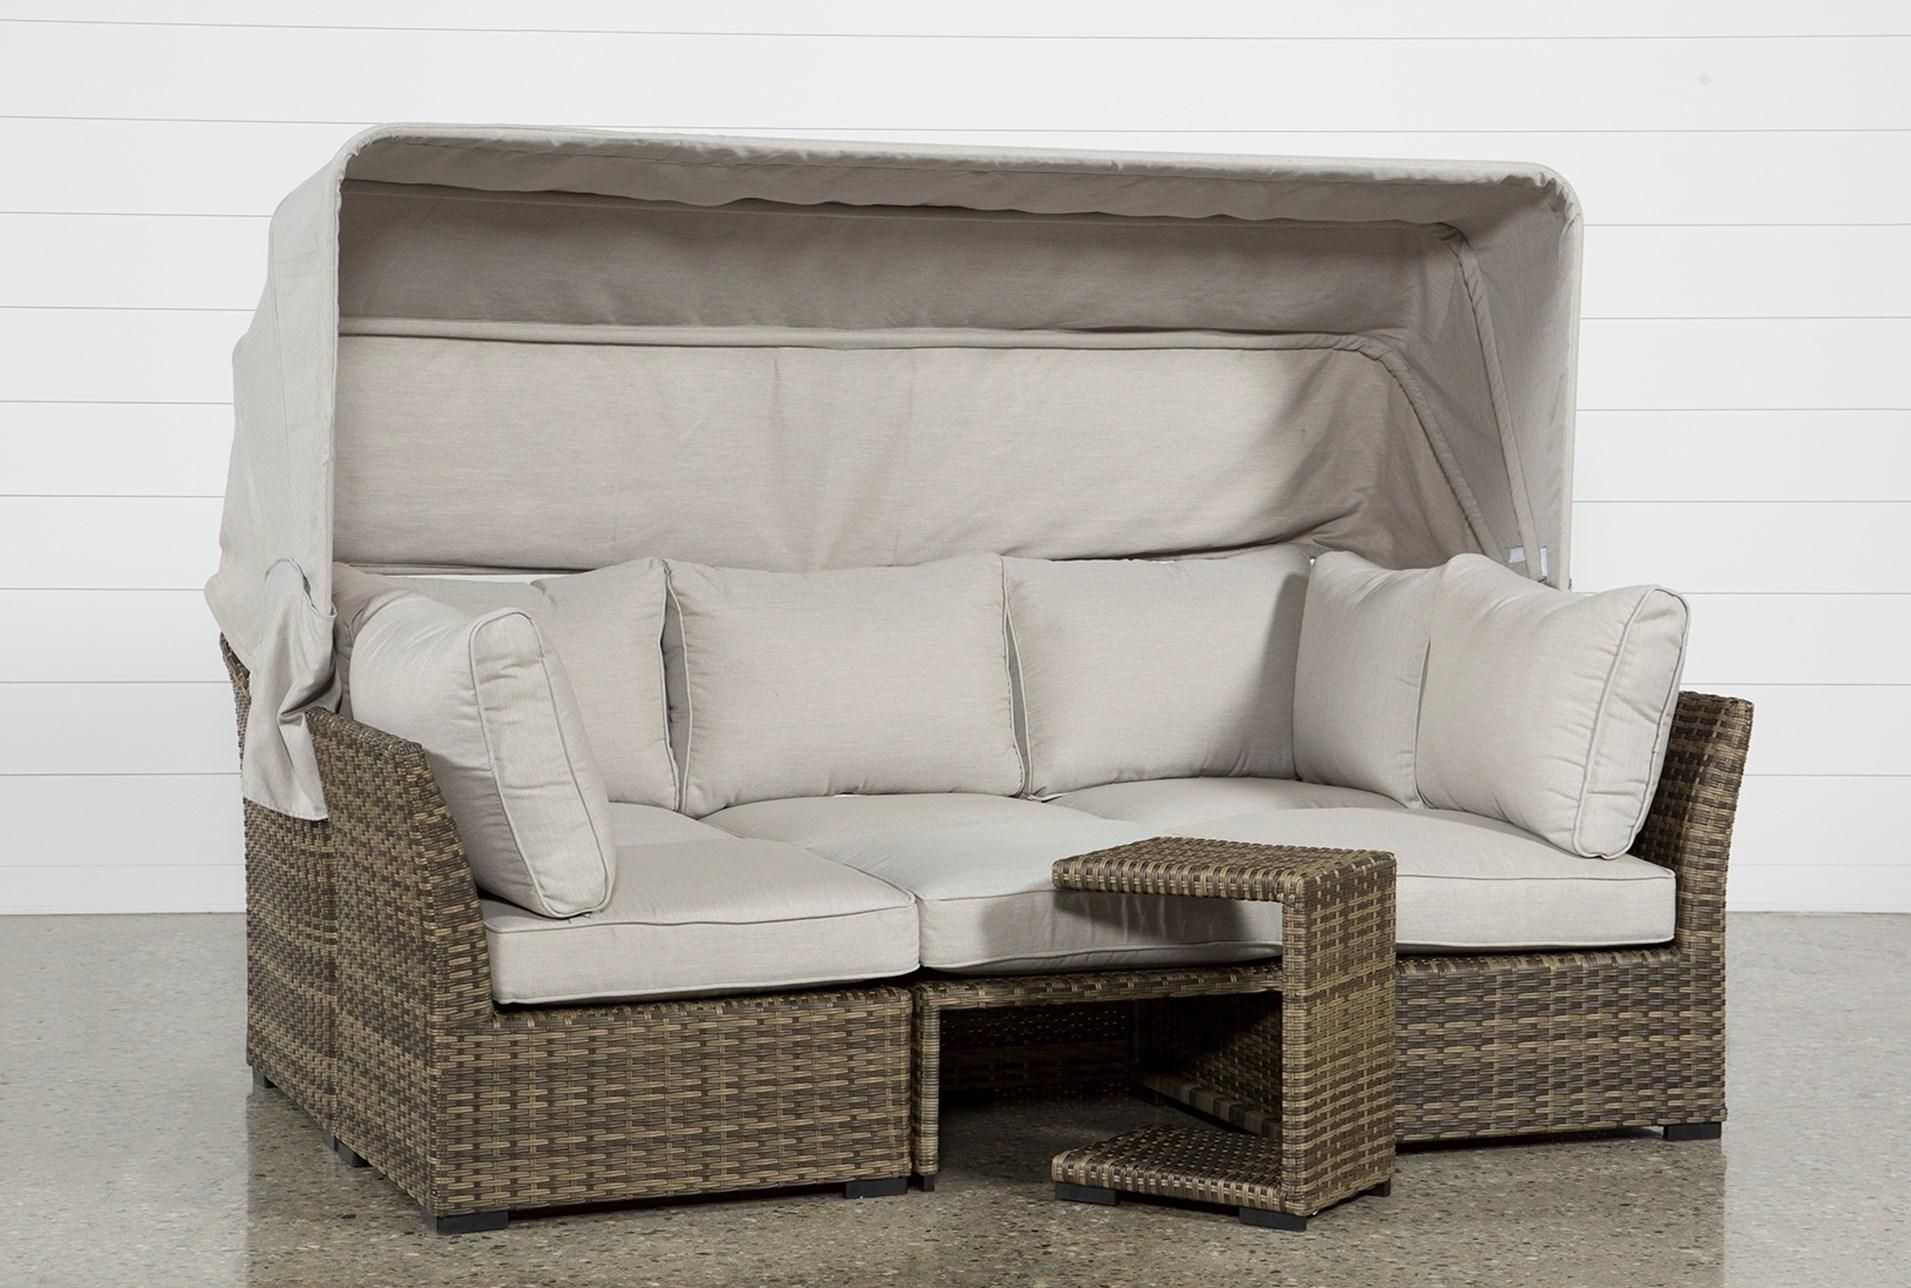 Outdoor Aventura II Daybed | Outdoor daybed, Outdoor ... on Living Spaces Outdoor Daybed id=22750